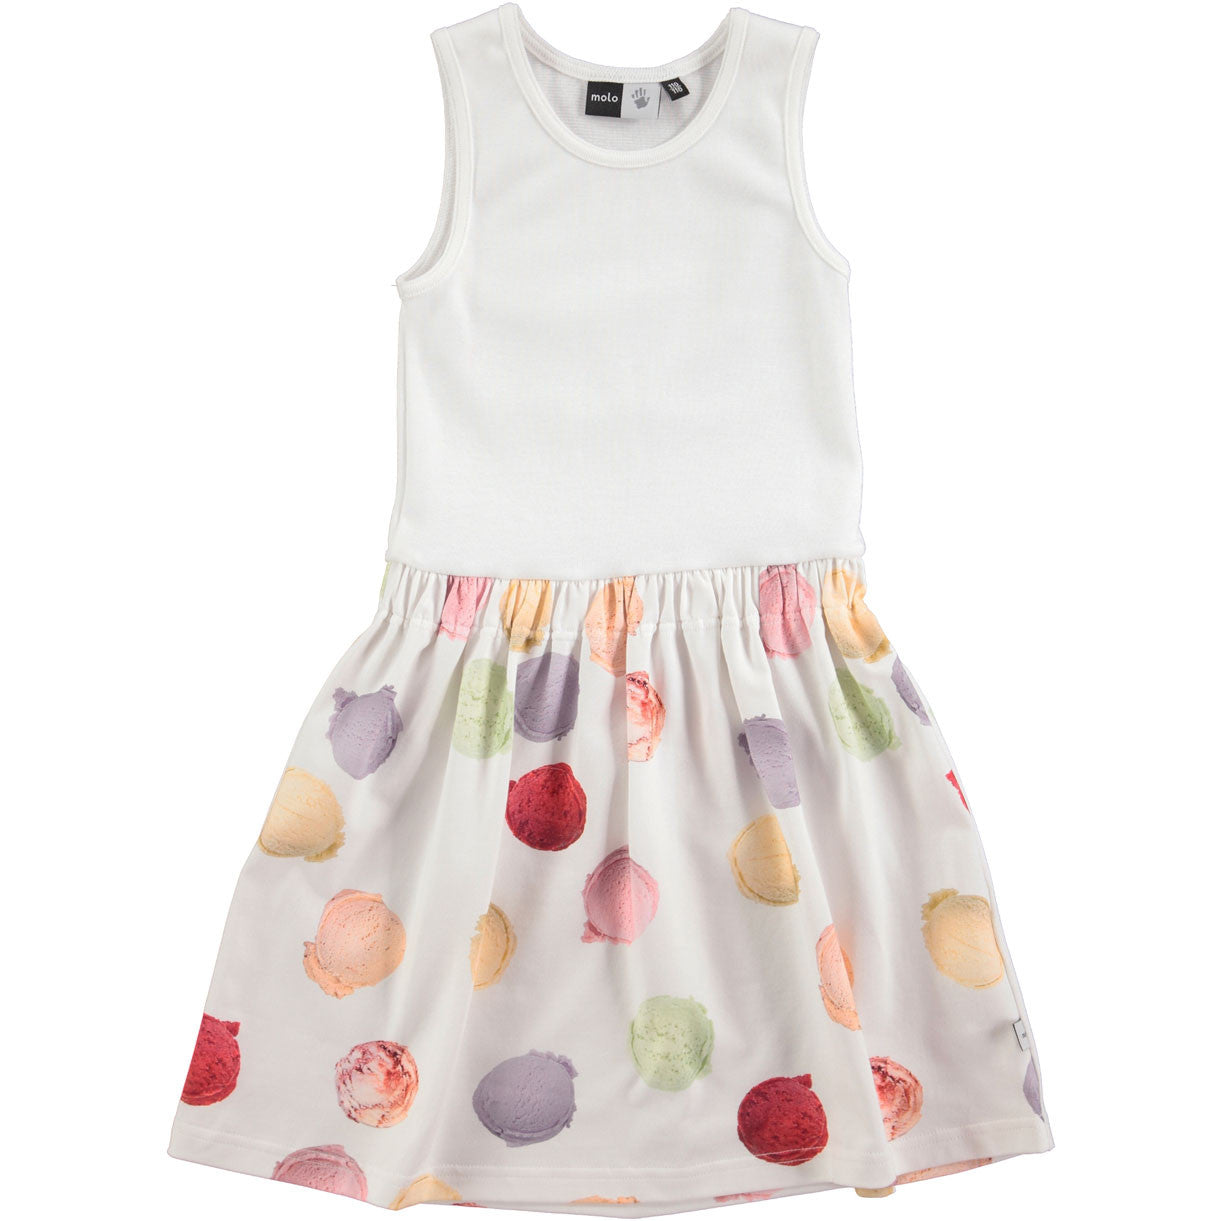 Molo Ice Scoops Colleen Dress - Ladida